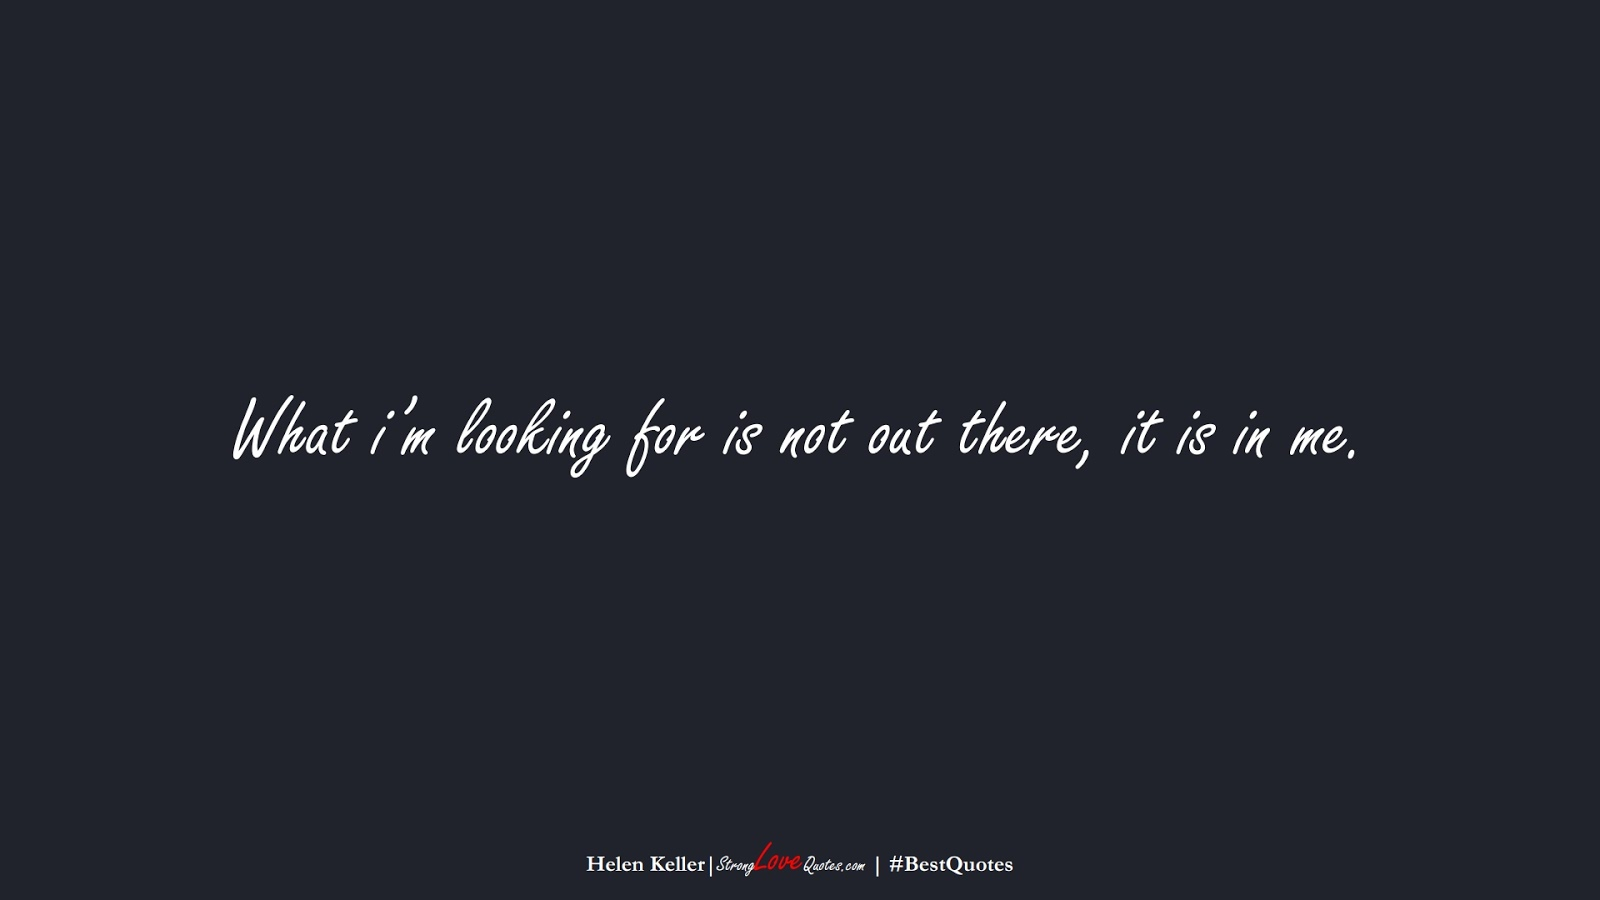 What i'm looking for is not out there, it is in me. (Helen Keller);  #BestQuotes